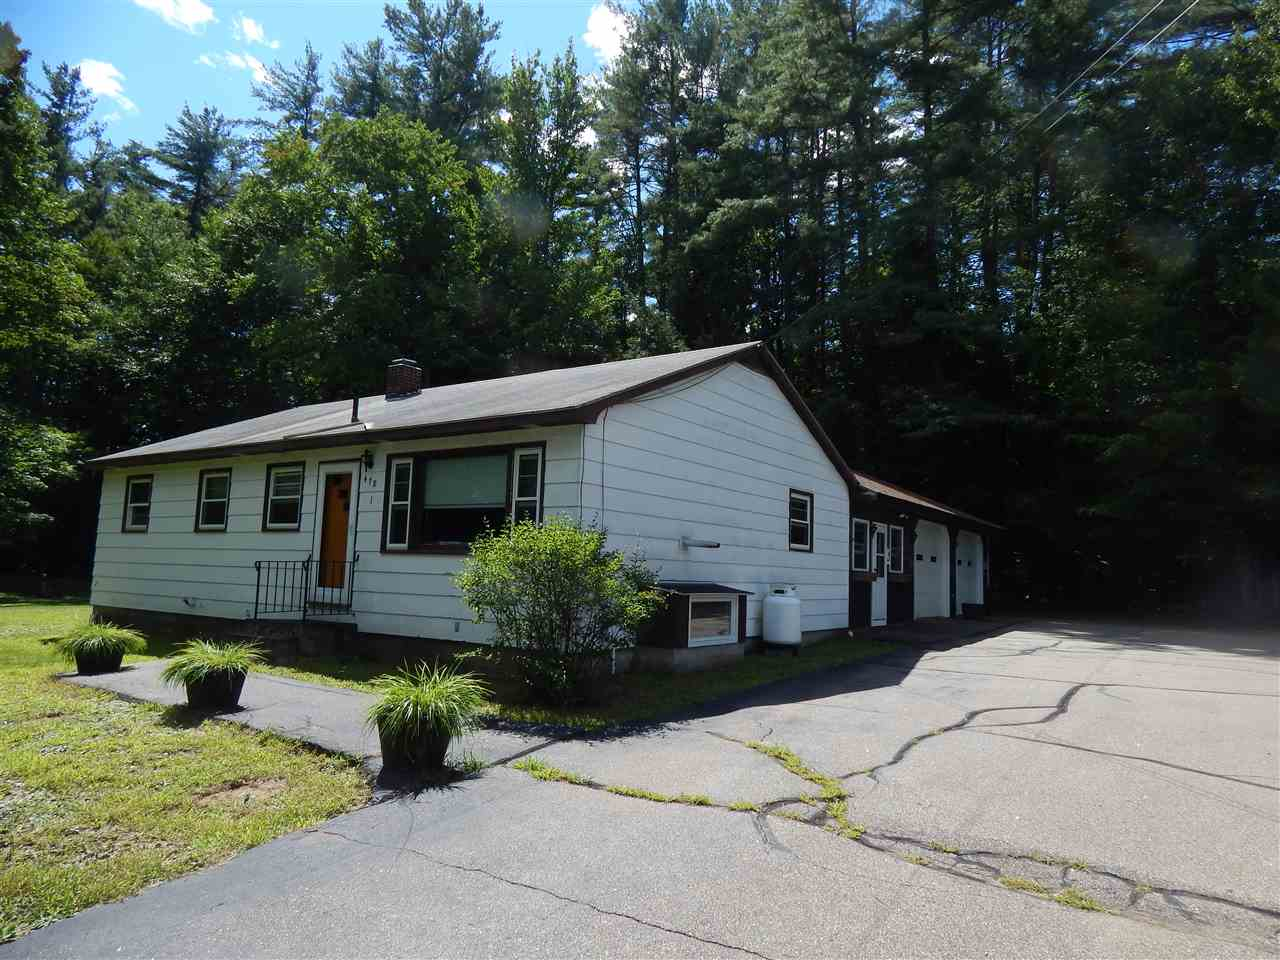 Photo of 476 Laconia Road Tilton NH 03276